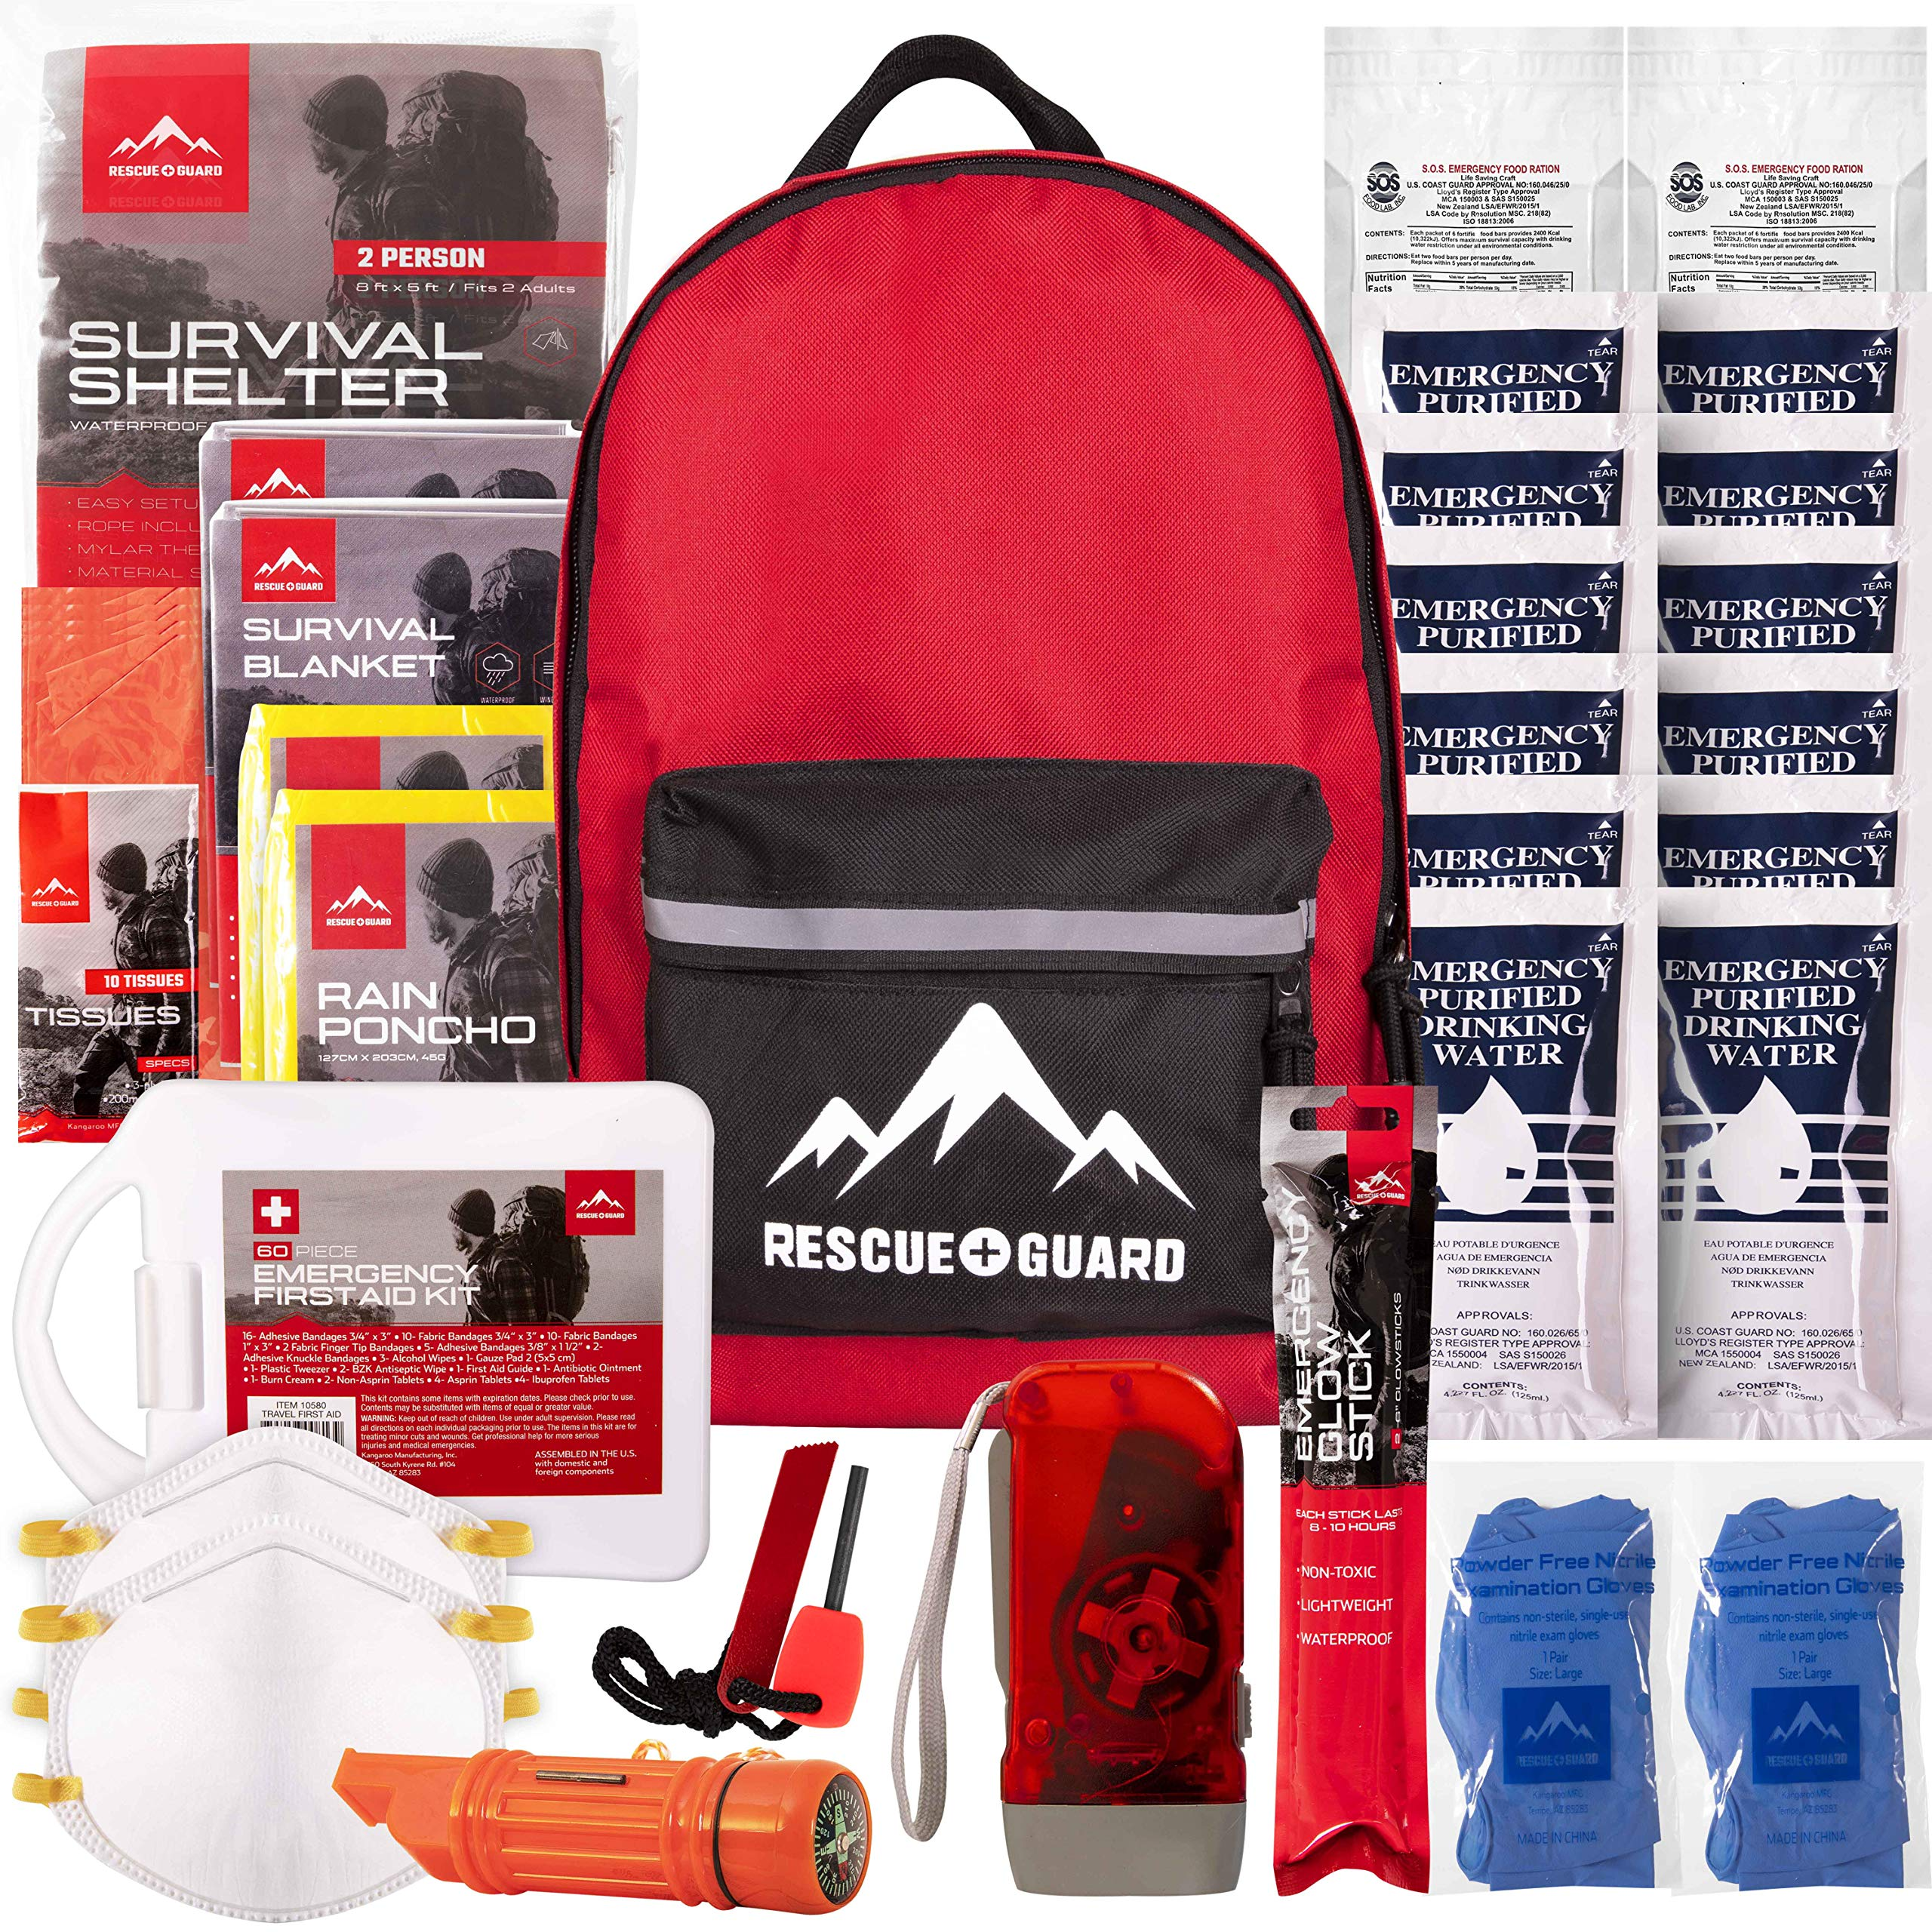 Rescue Guard; First Aid Kit, Hurricane Kit, Disaster Kit or Earthquake Kit; Emergency Survival Kit, Bug Out Bag Supplies, Survival Gear for 12 Days, 6 Days for 2, 72 Hours 4 People (Survival Pack) by Rescue Guard